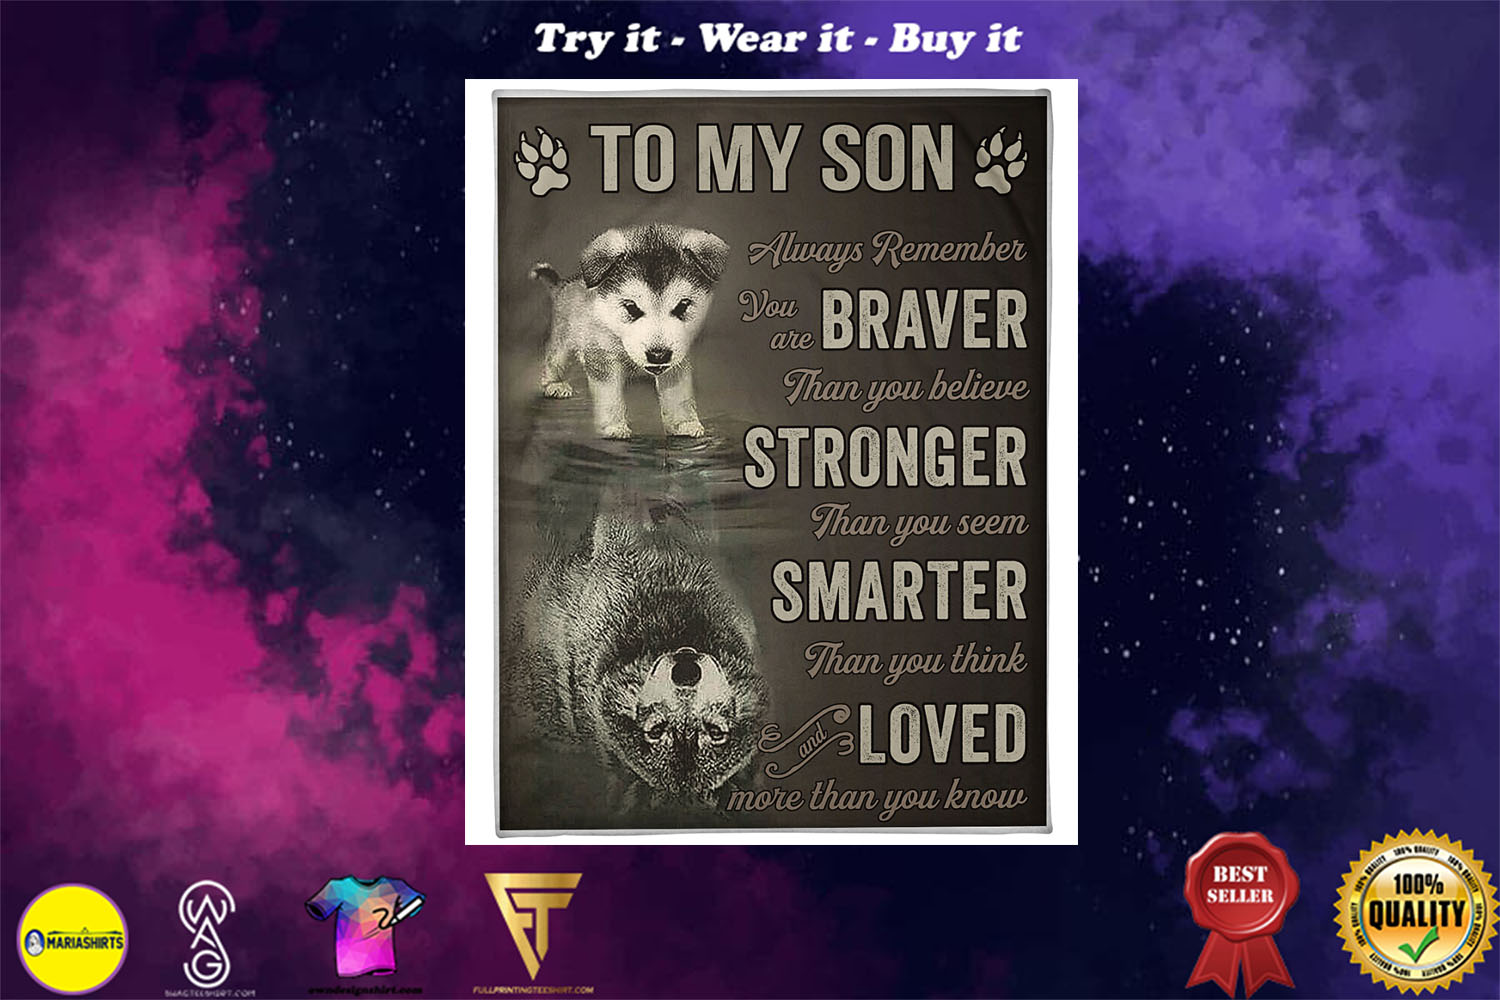 [special edition] wolf to my son always remember loved more than you know full printing blanket - maria